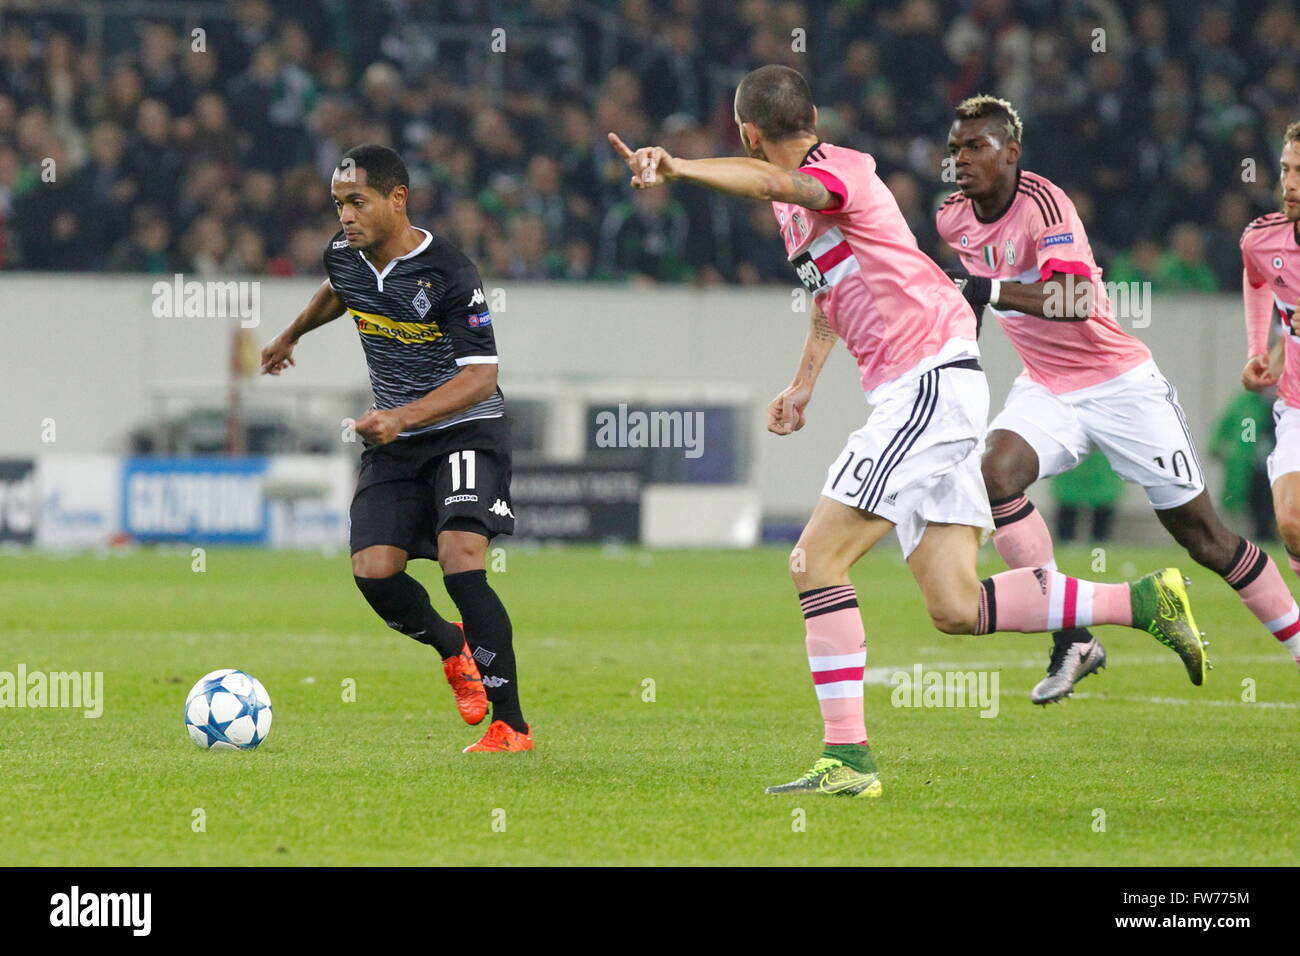 Raffael  in action during the champion league match Monchengladbach - Juventus Monchengladbach, November 3, 2015 - Stock Image